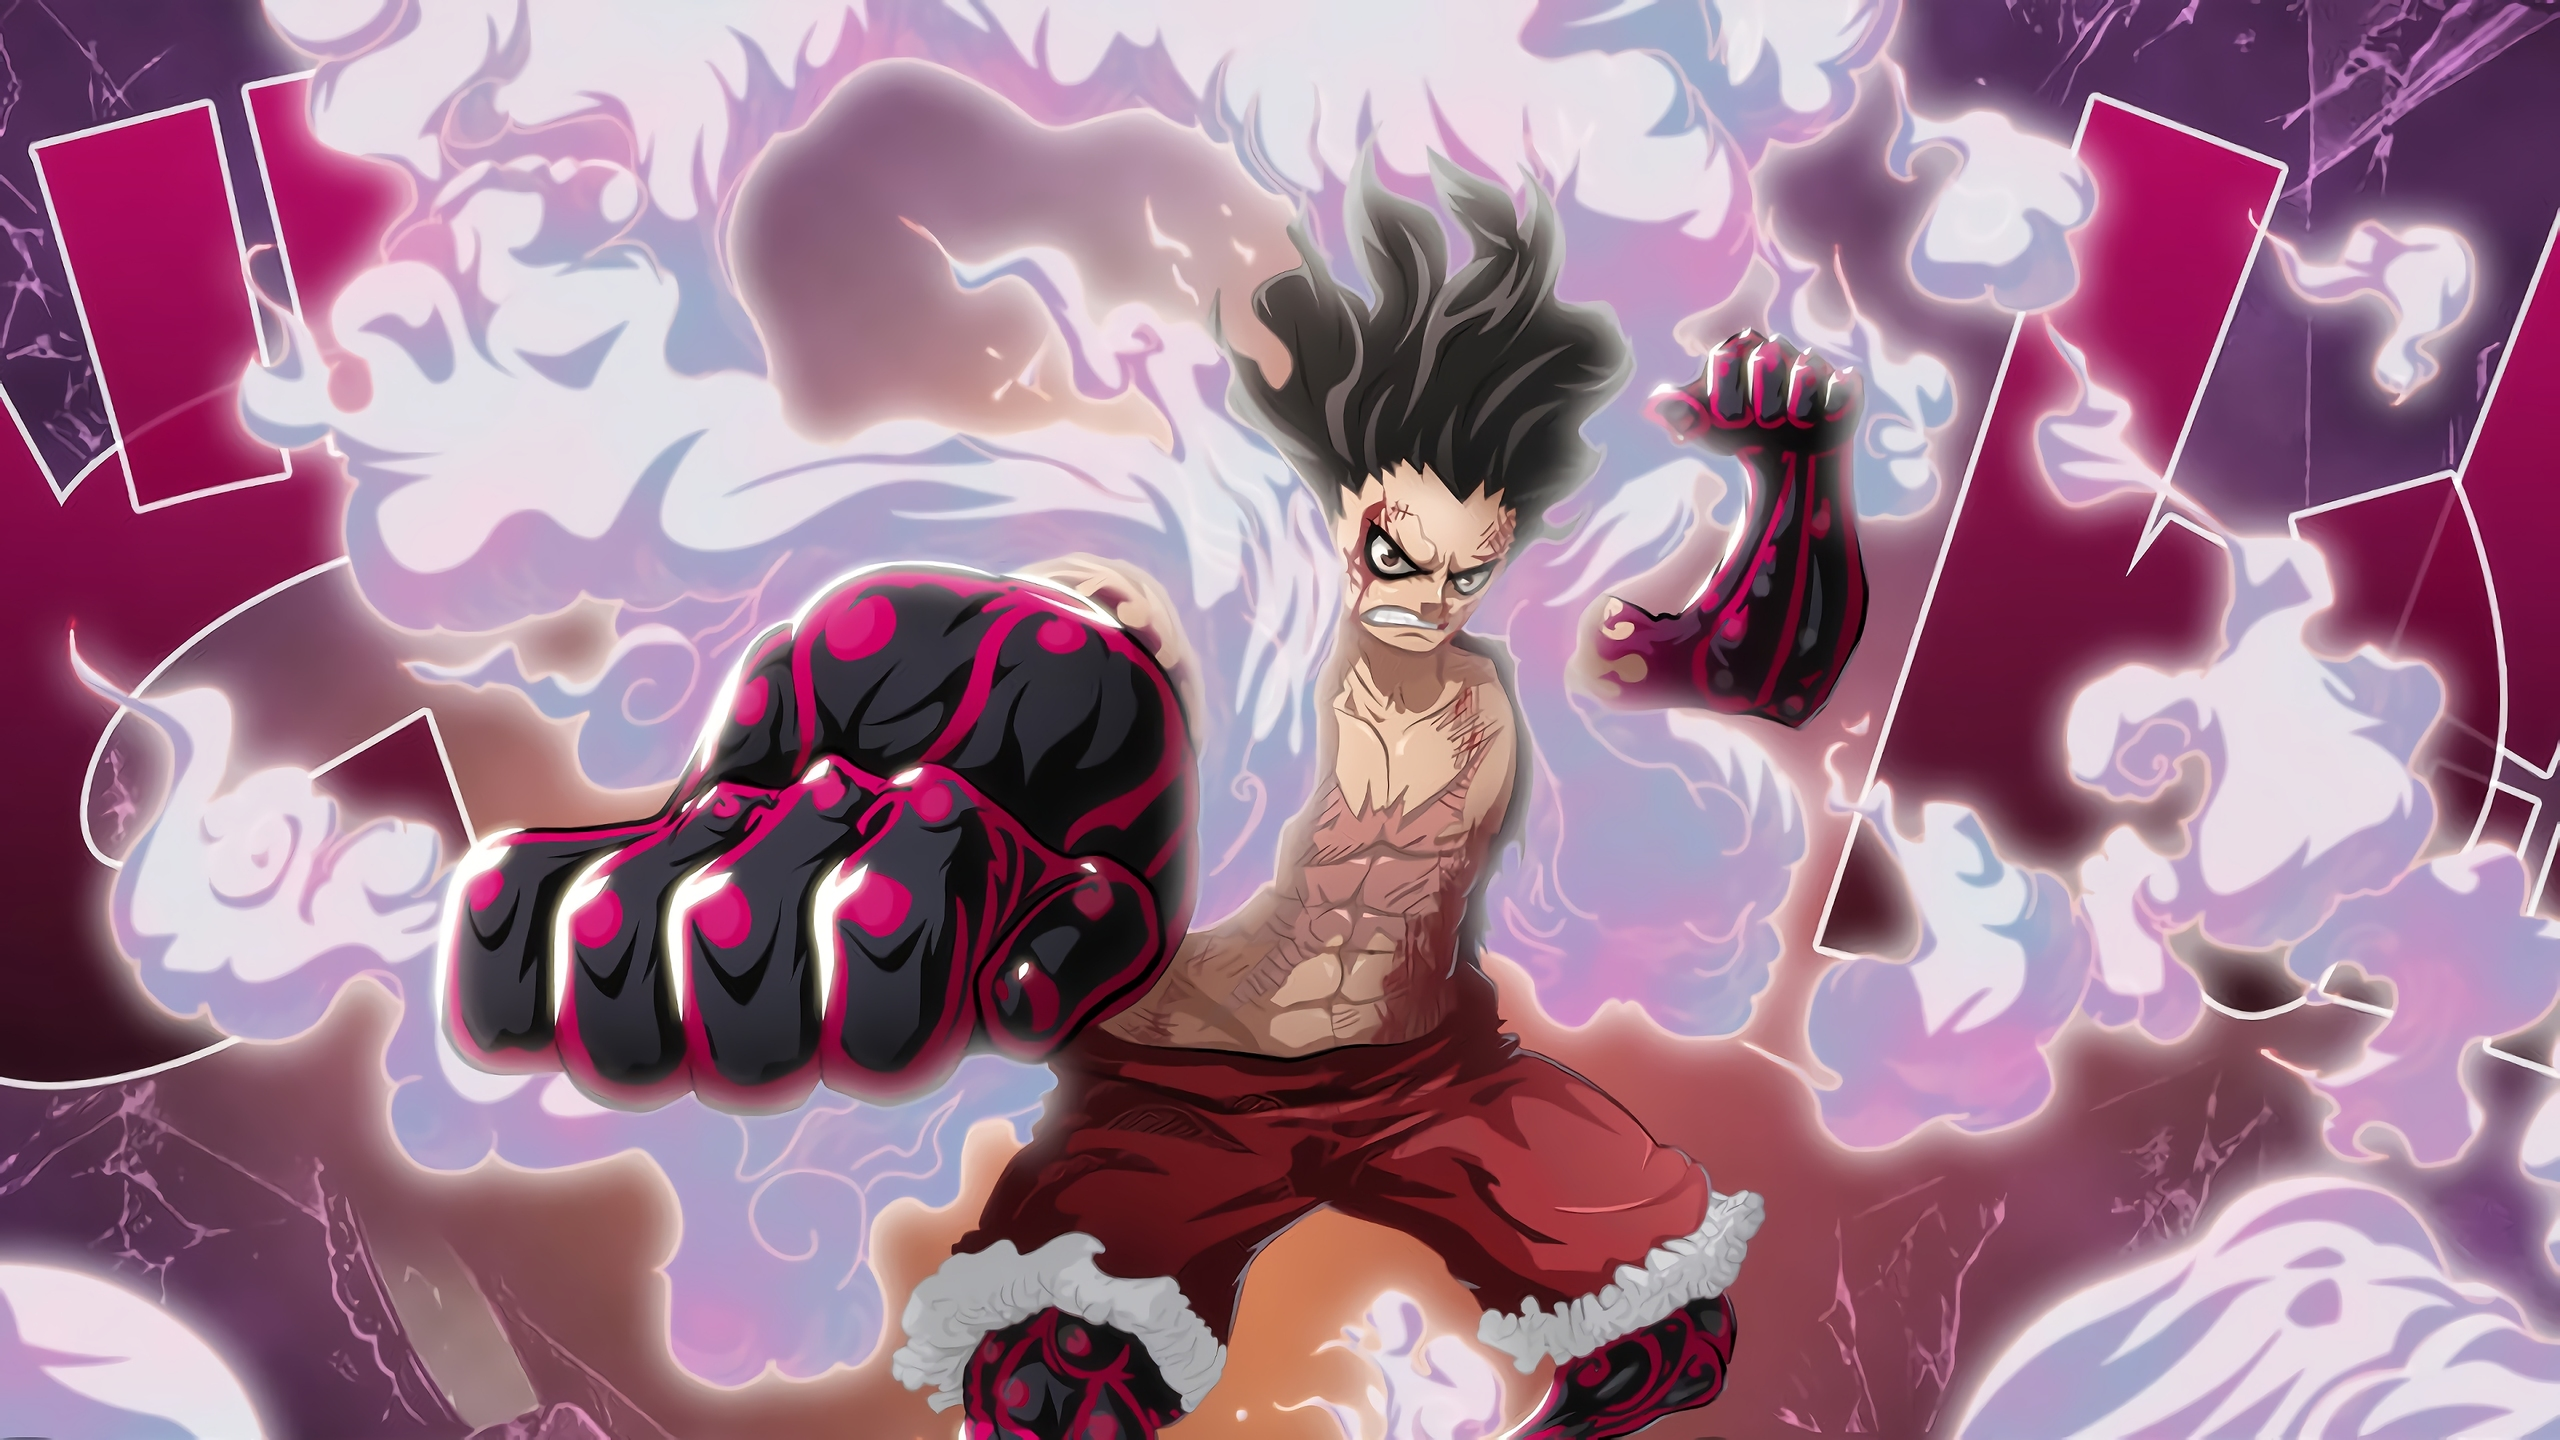 Such as png jpg animated gifs pic art logo black and white. 2560x1440 One Piece Monkey D Luffy 1440p Resolution Hd 4k Wallpapers Images Backgrounds Photos And Pictures